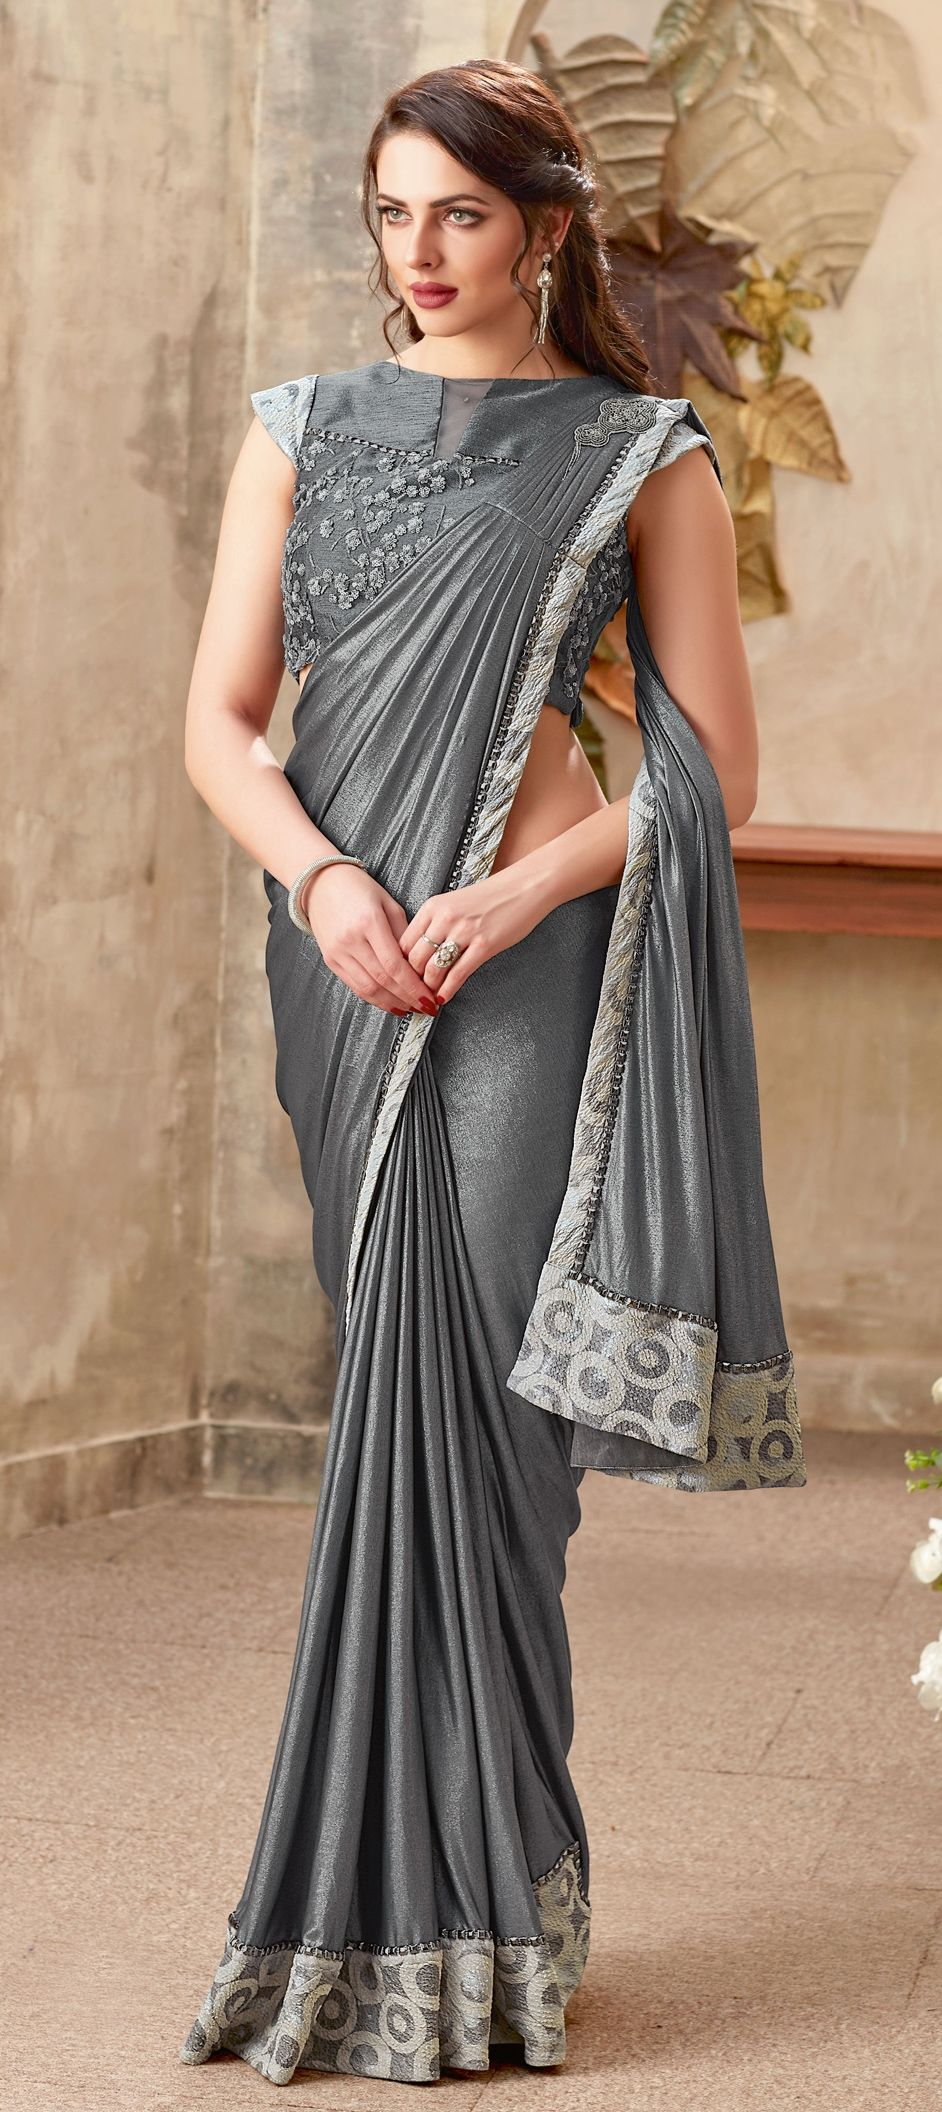 Lycra Engagement Readymade Saree In Black And Grey With Thread Work